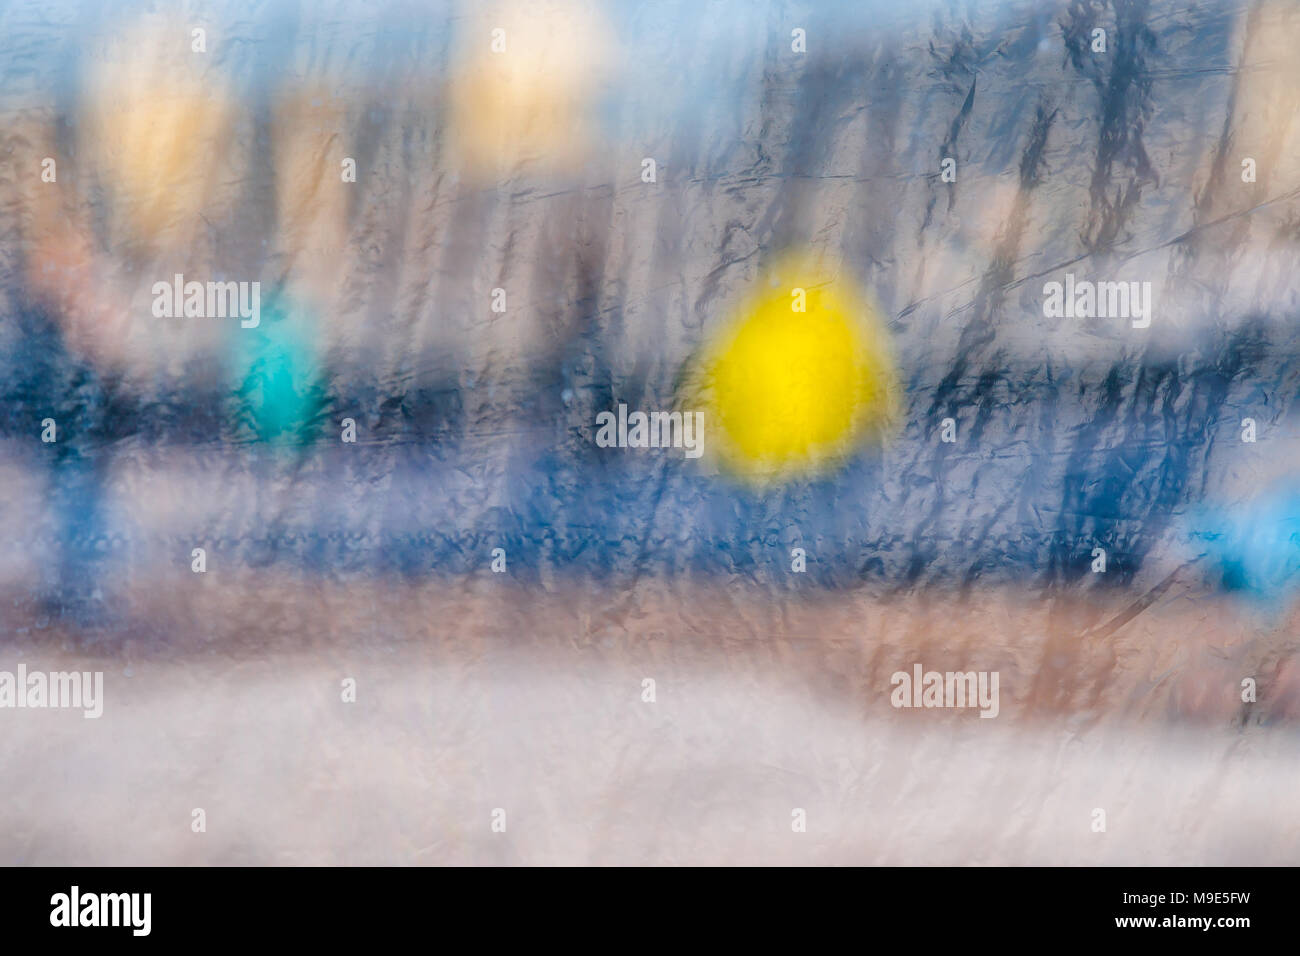 Blurred reflections in a window glass curtained with some plastic cloth Stock Photo